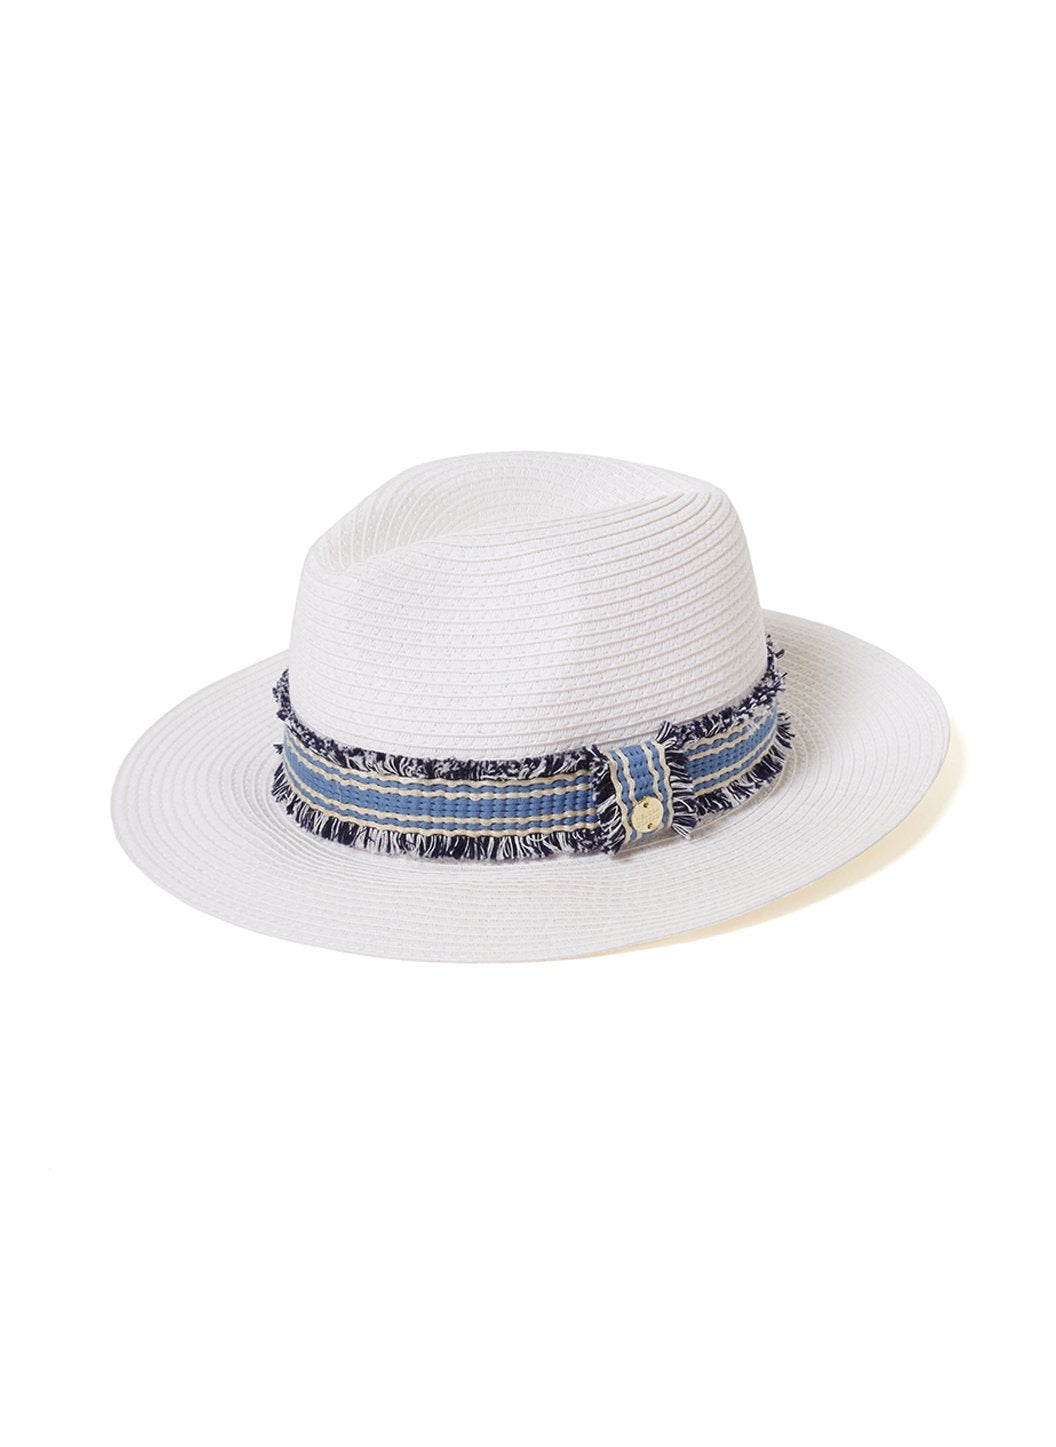 Fedora Hat White/Blue